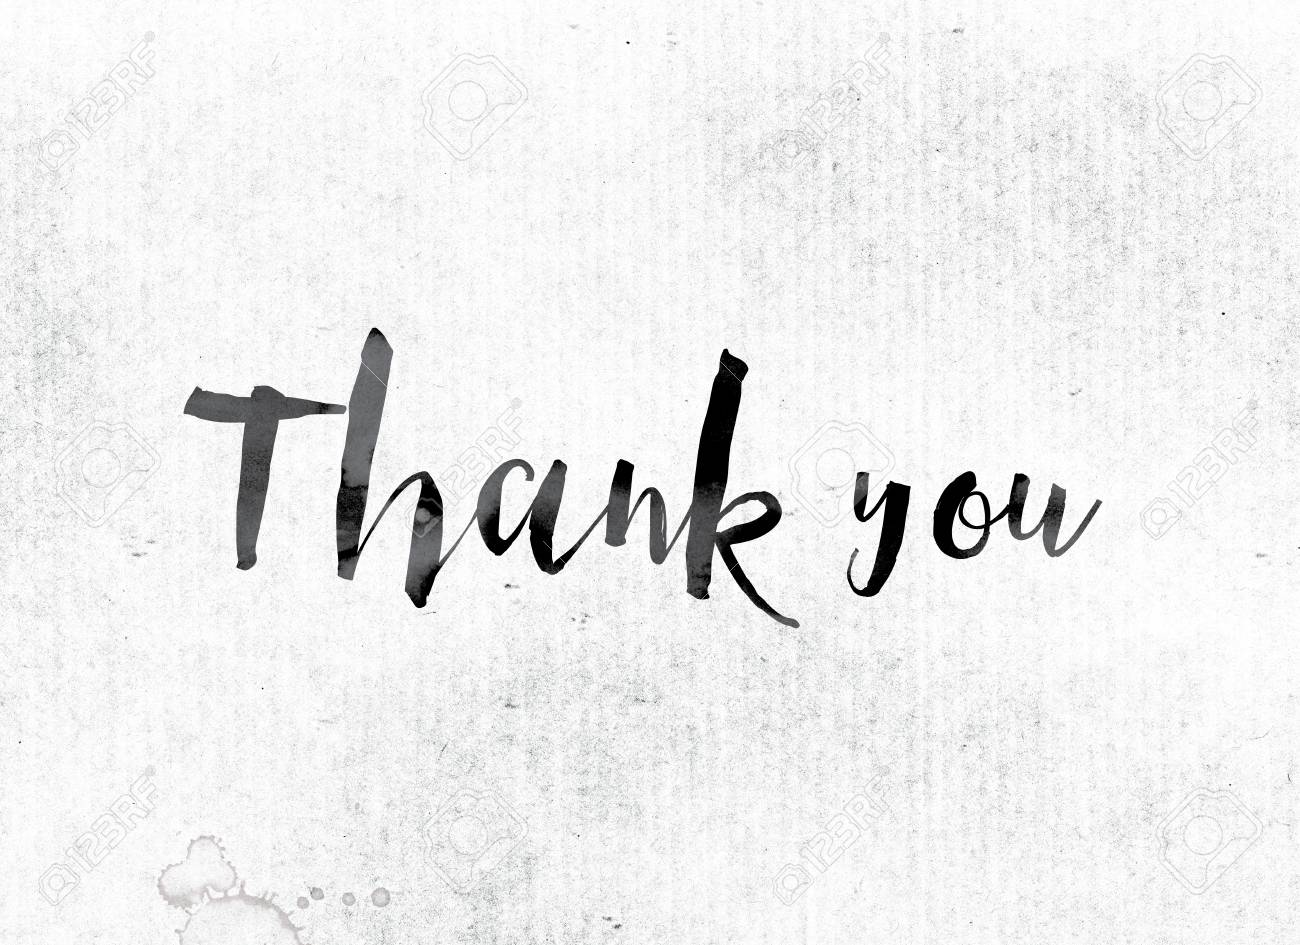 the word thank you concept and theme painted in watercolor stock